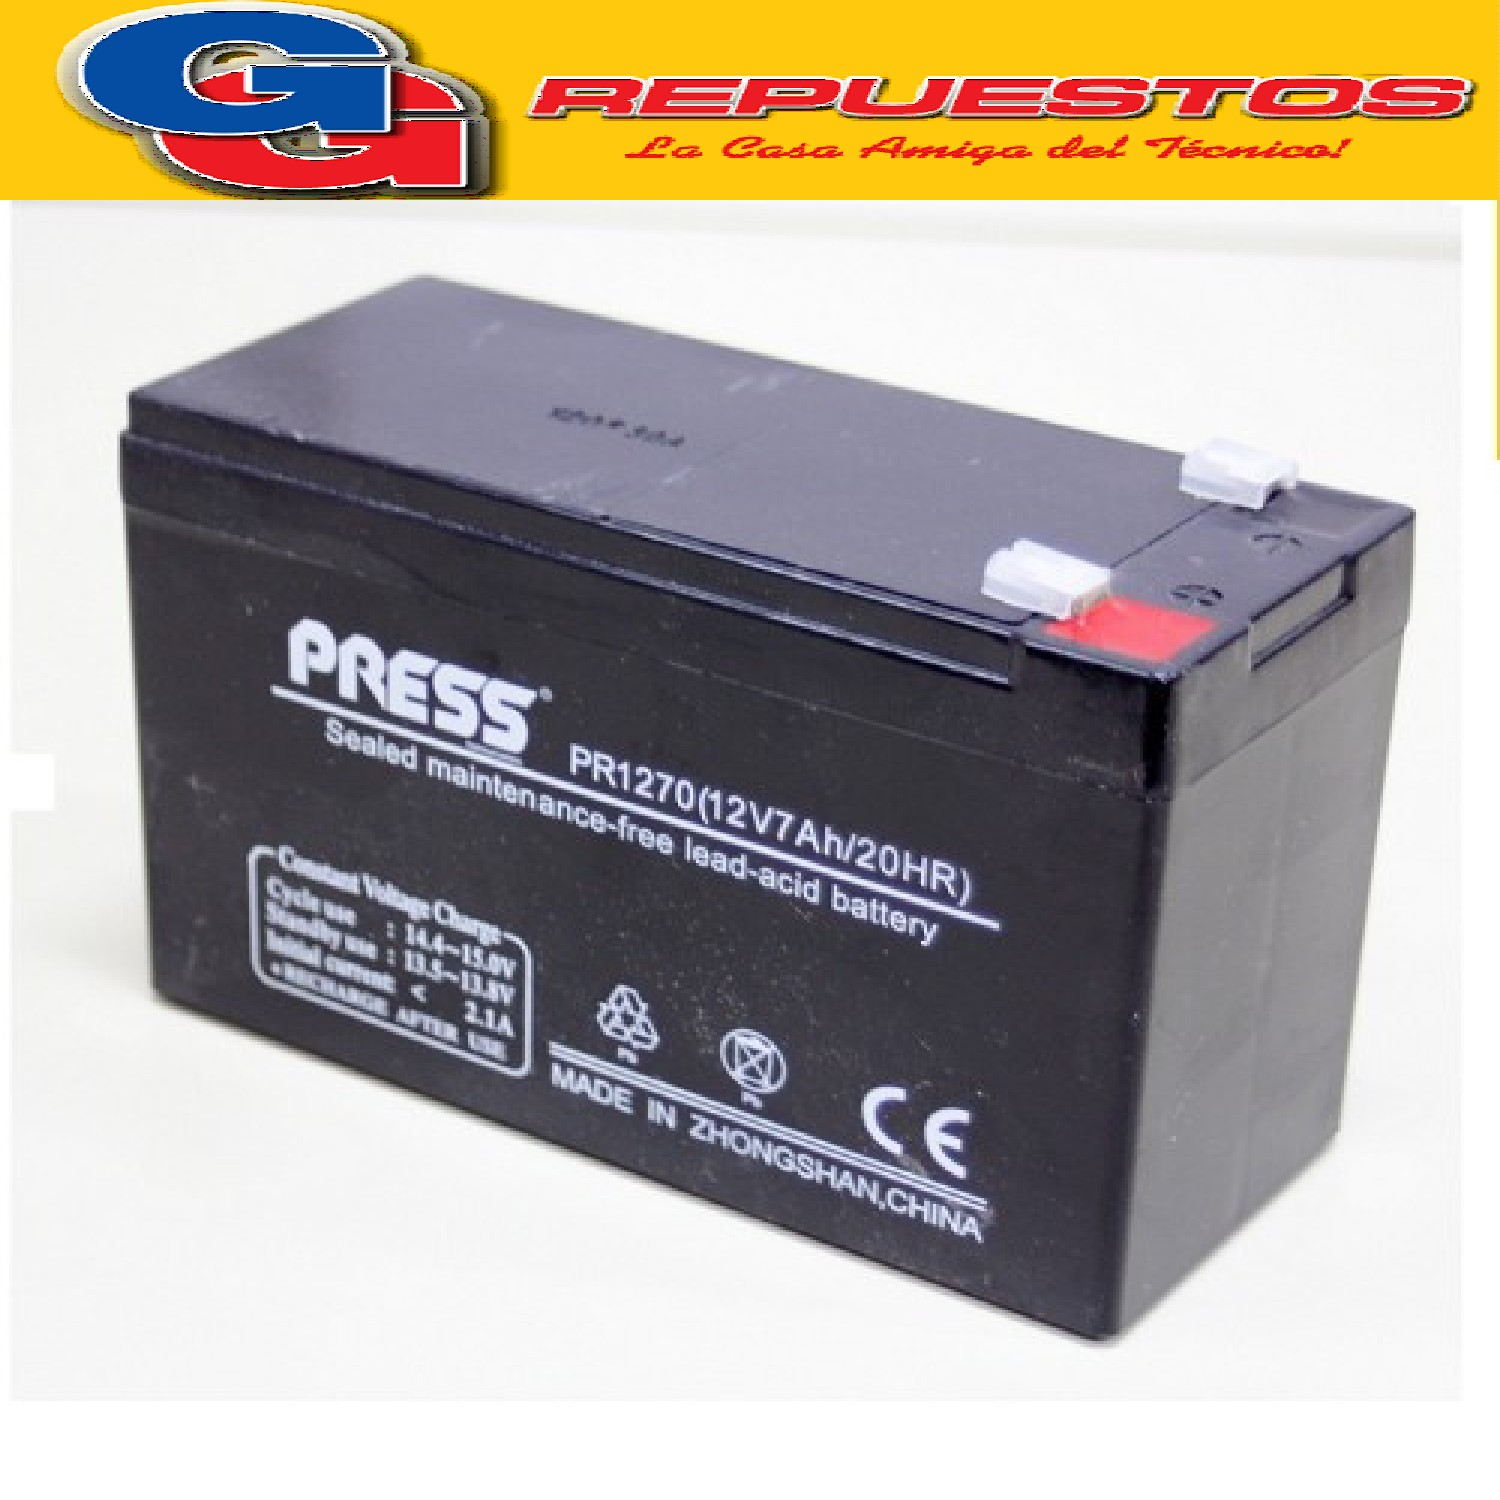 BATERIA RECARGABLE 12V-7A NEATA  Largo:151MM Ancho:65MM Altura:94MM Tipo de conector: FO-01